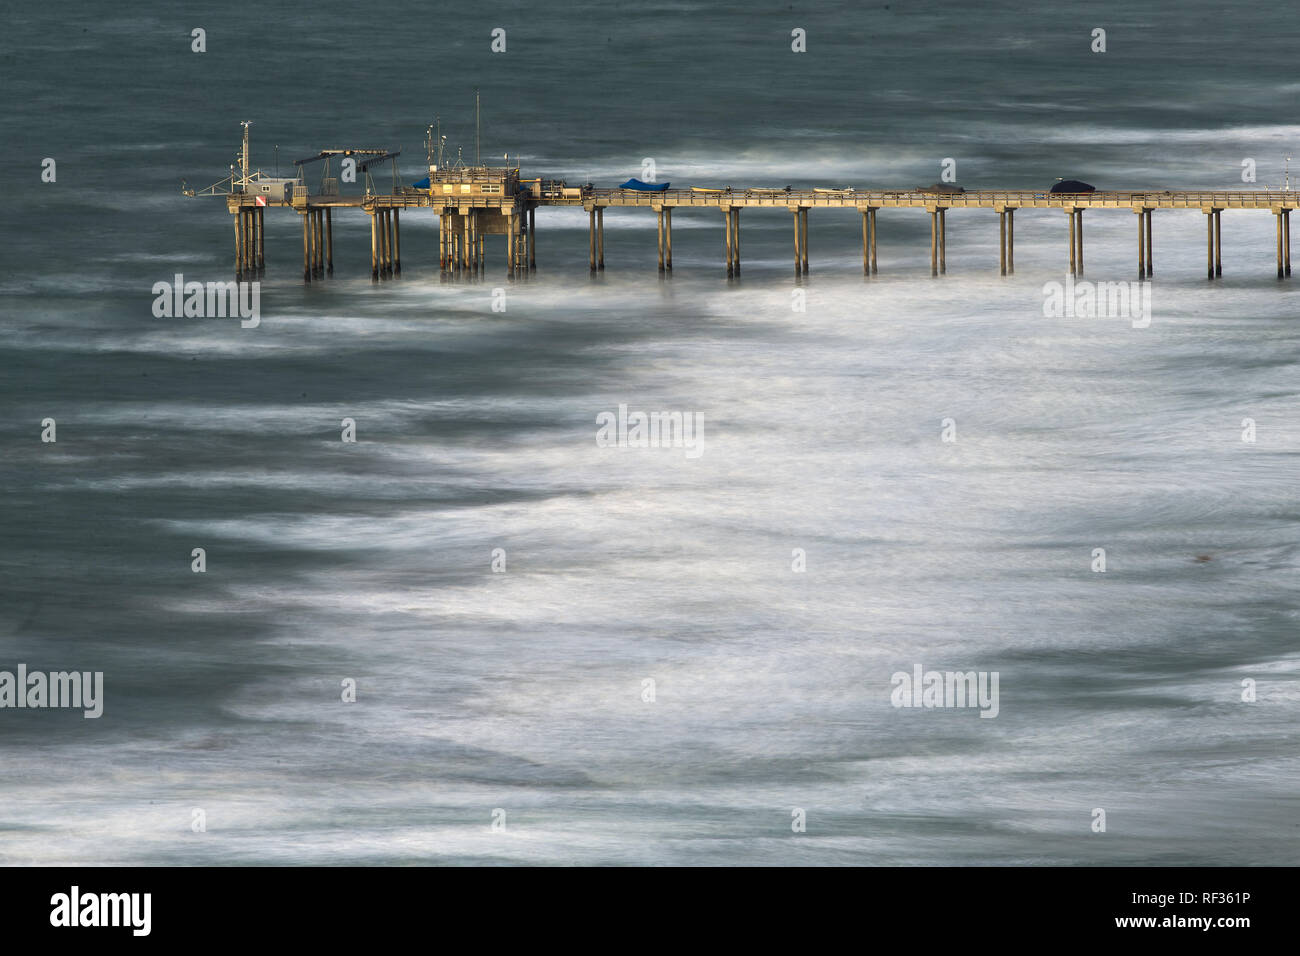 San Diego, California, USA. 22nd Jan, 2019. Jan. 22, 2018 - San Diego, California, USA - Large waves break at low tide at the Scripps Institute of Oceanography Pier in La Jolla during a winter storm. Credit: KC Alfred/ZUMA Wire/Alamy Live News - Stock Image